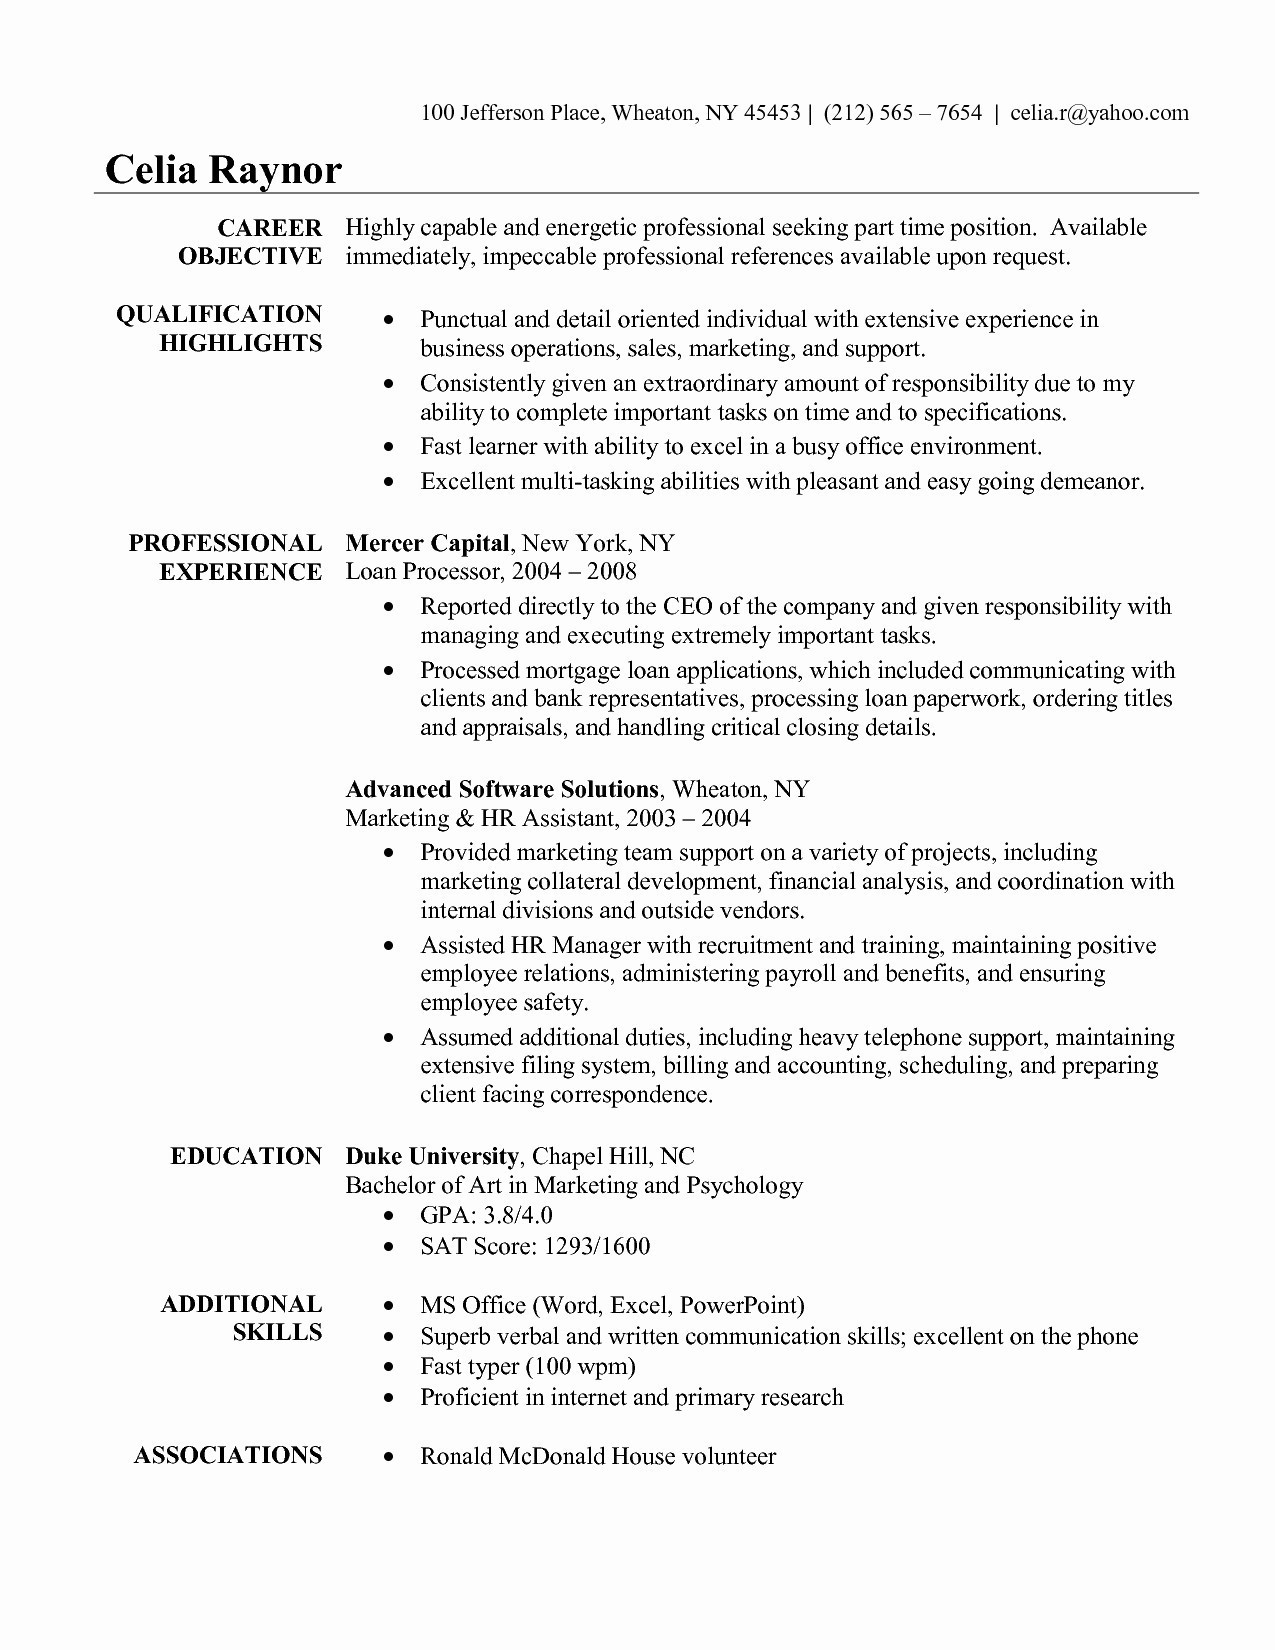 Quick Learner Resume Example - Quick Learner Resume Unique How Write A Resume for A Job Good